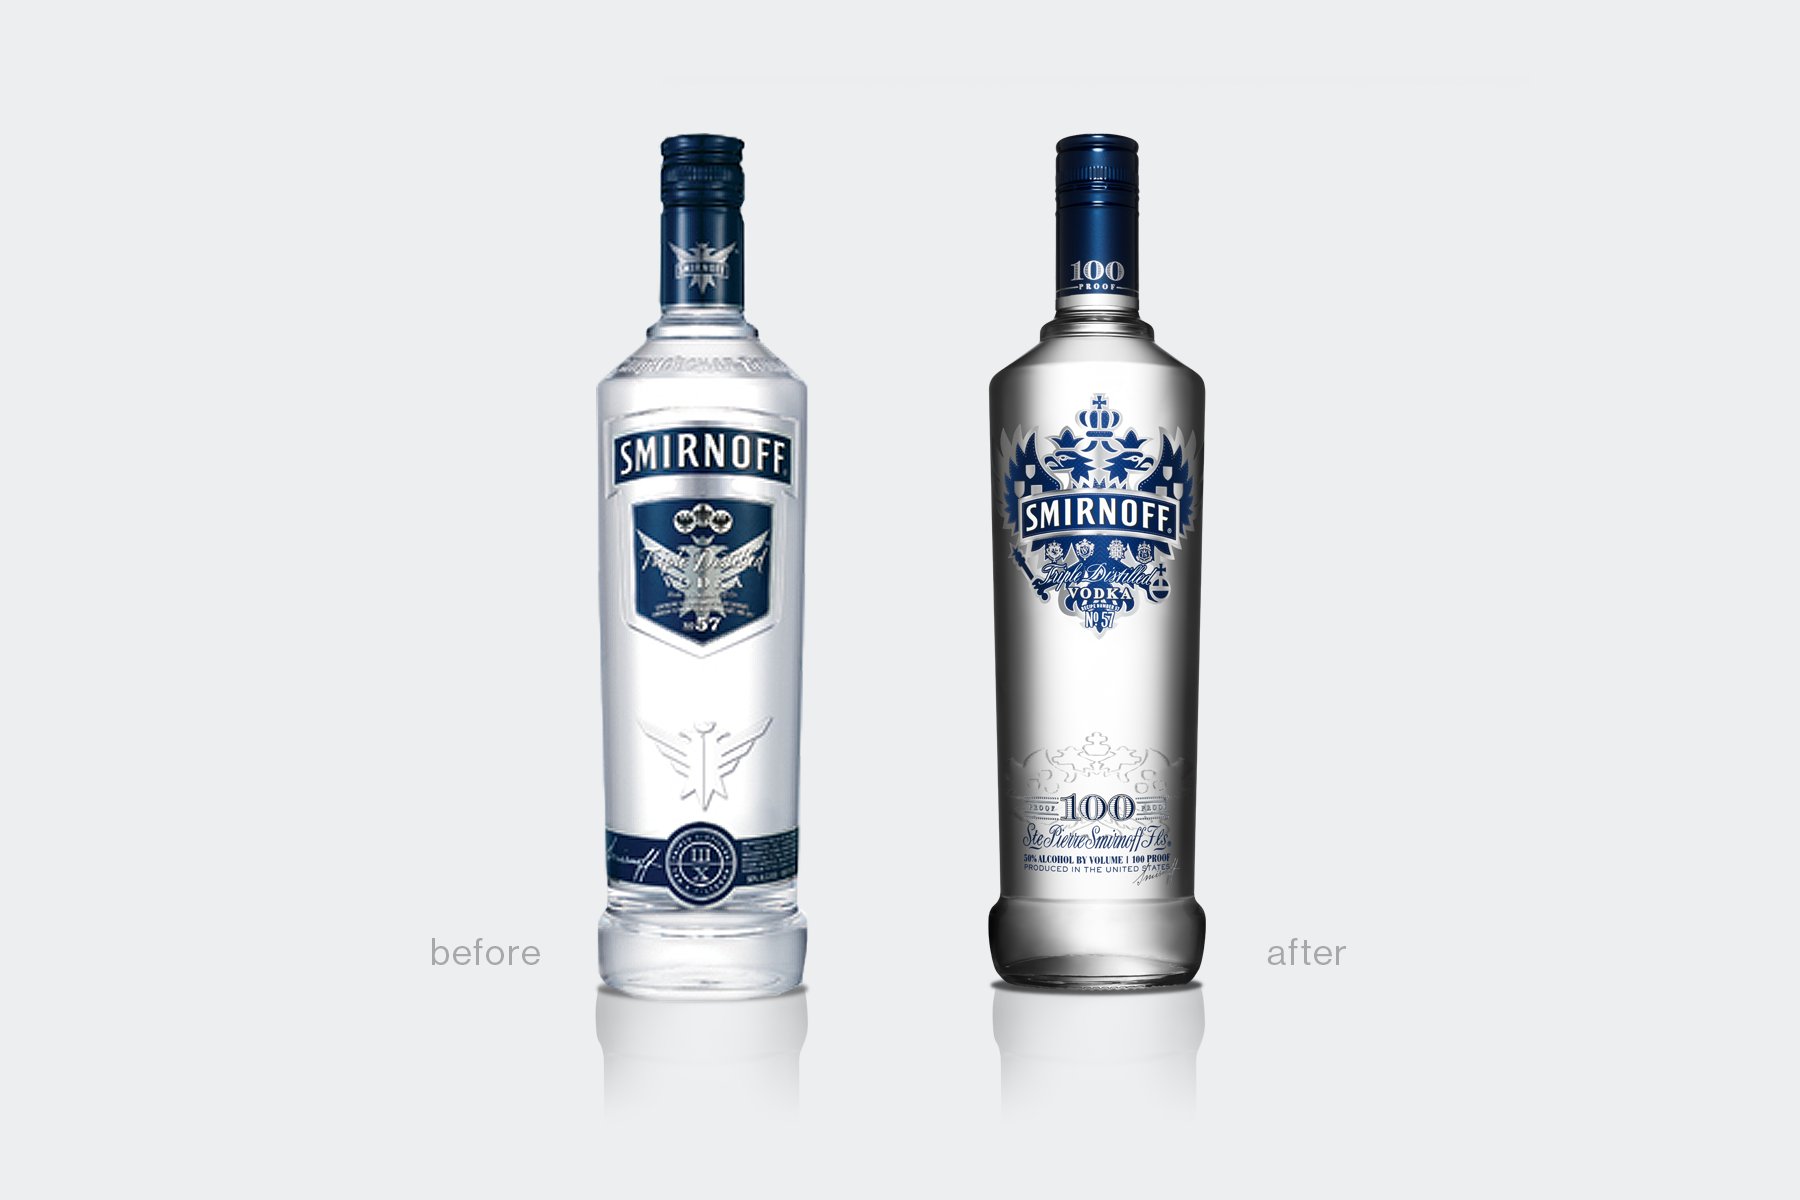 Smirnoff 100 Proof vodka redesign, before and after